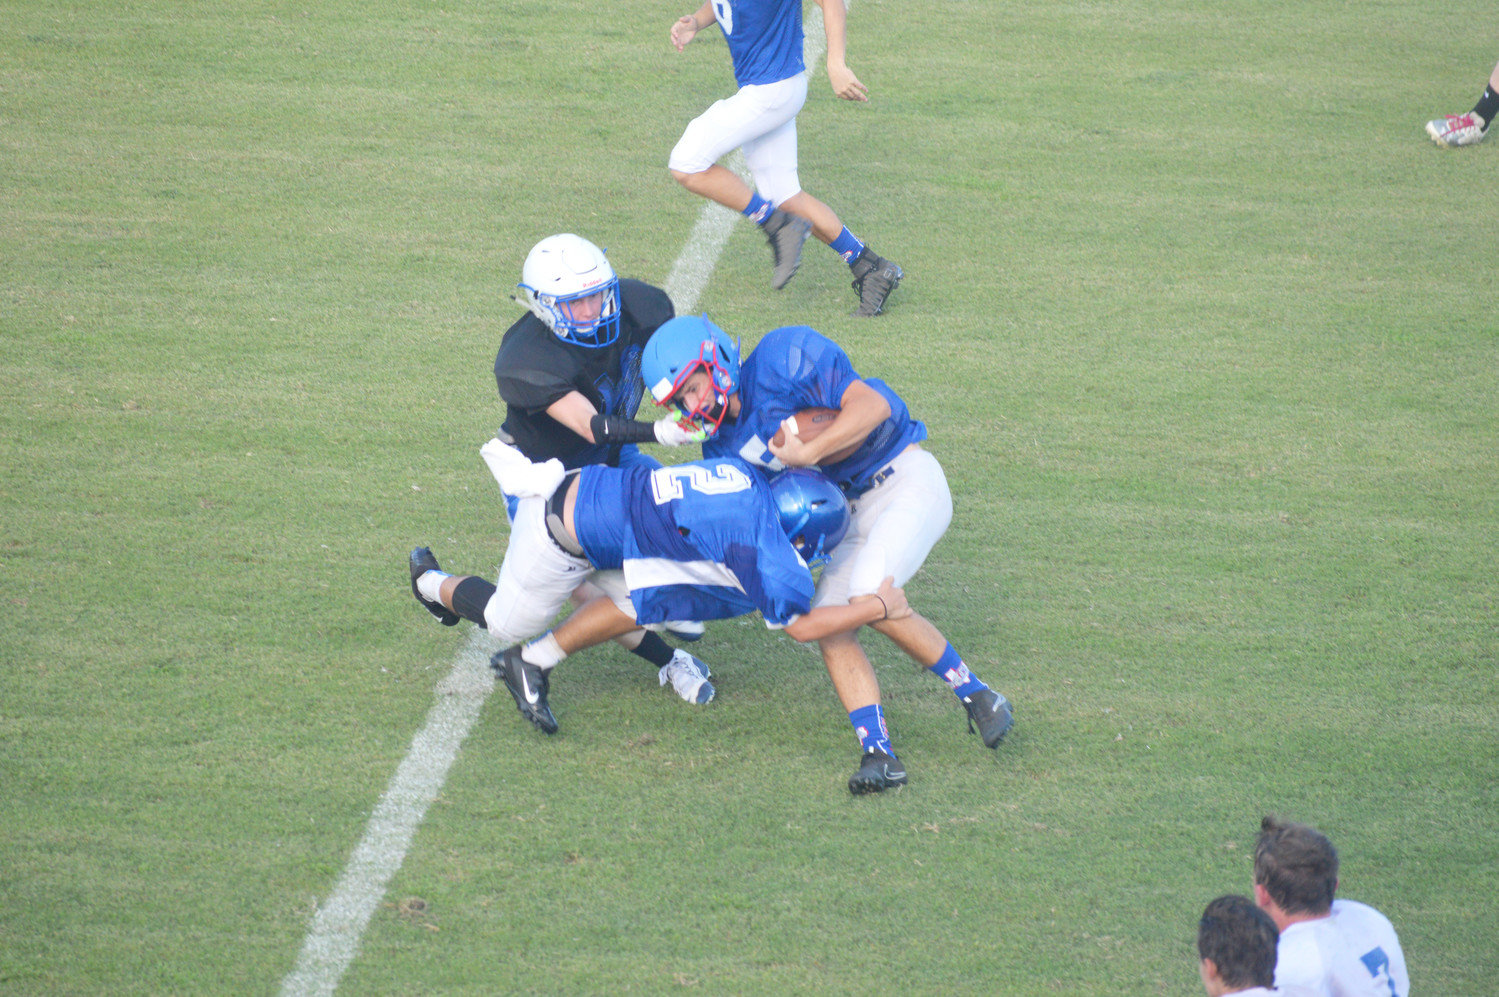 Josh Medlin (5) is brought down by a pair of Hawkins Hawks in Thursday's scrimmage.